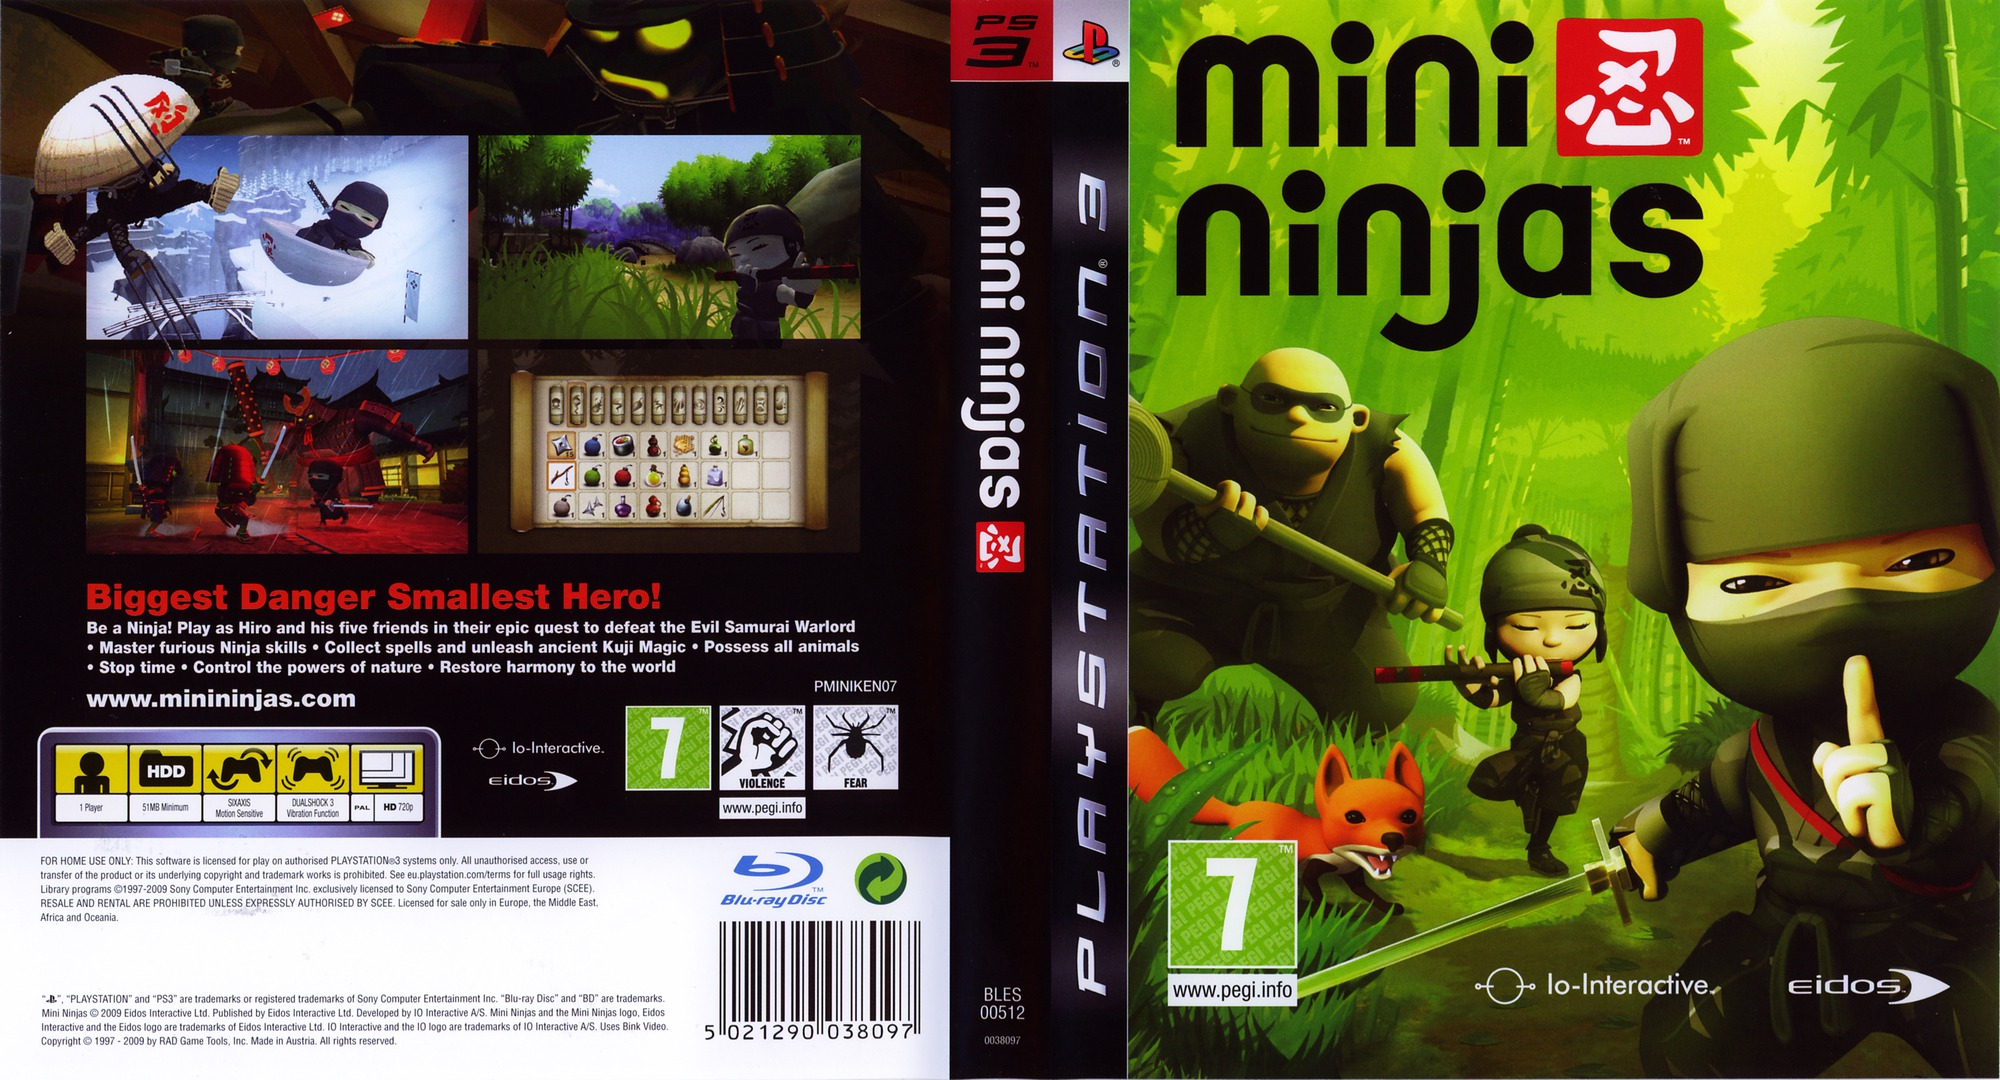 Mini Ninjas PS3 coverfullHQ (BLES00512)